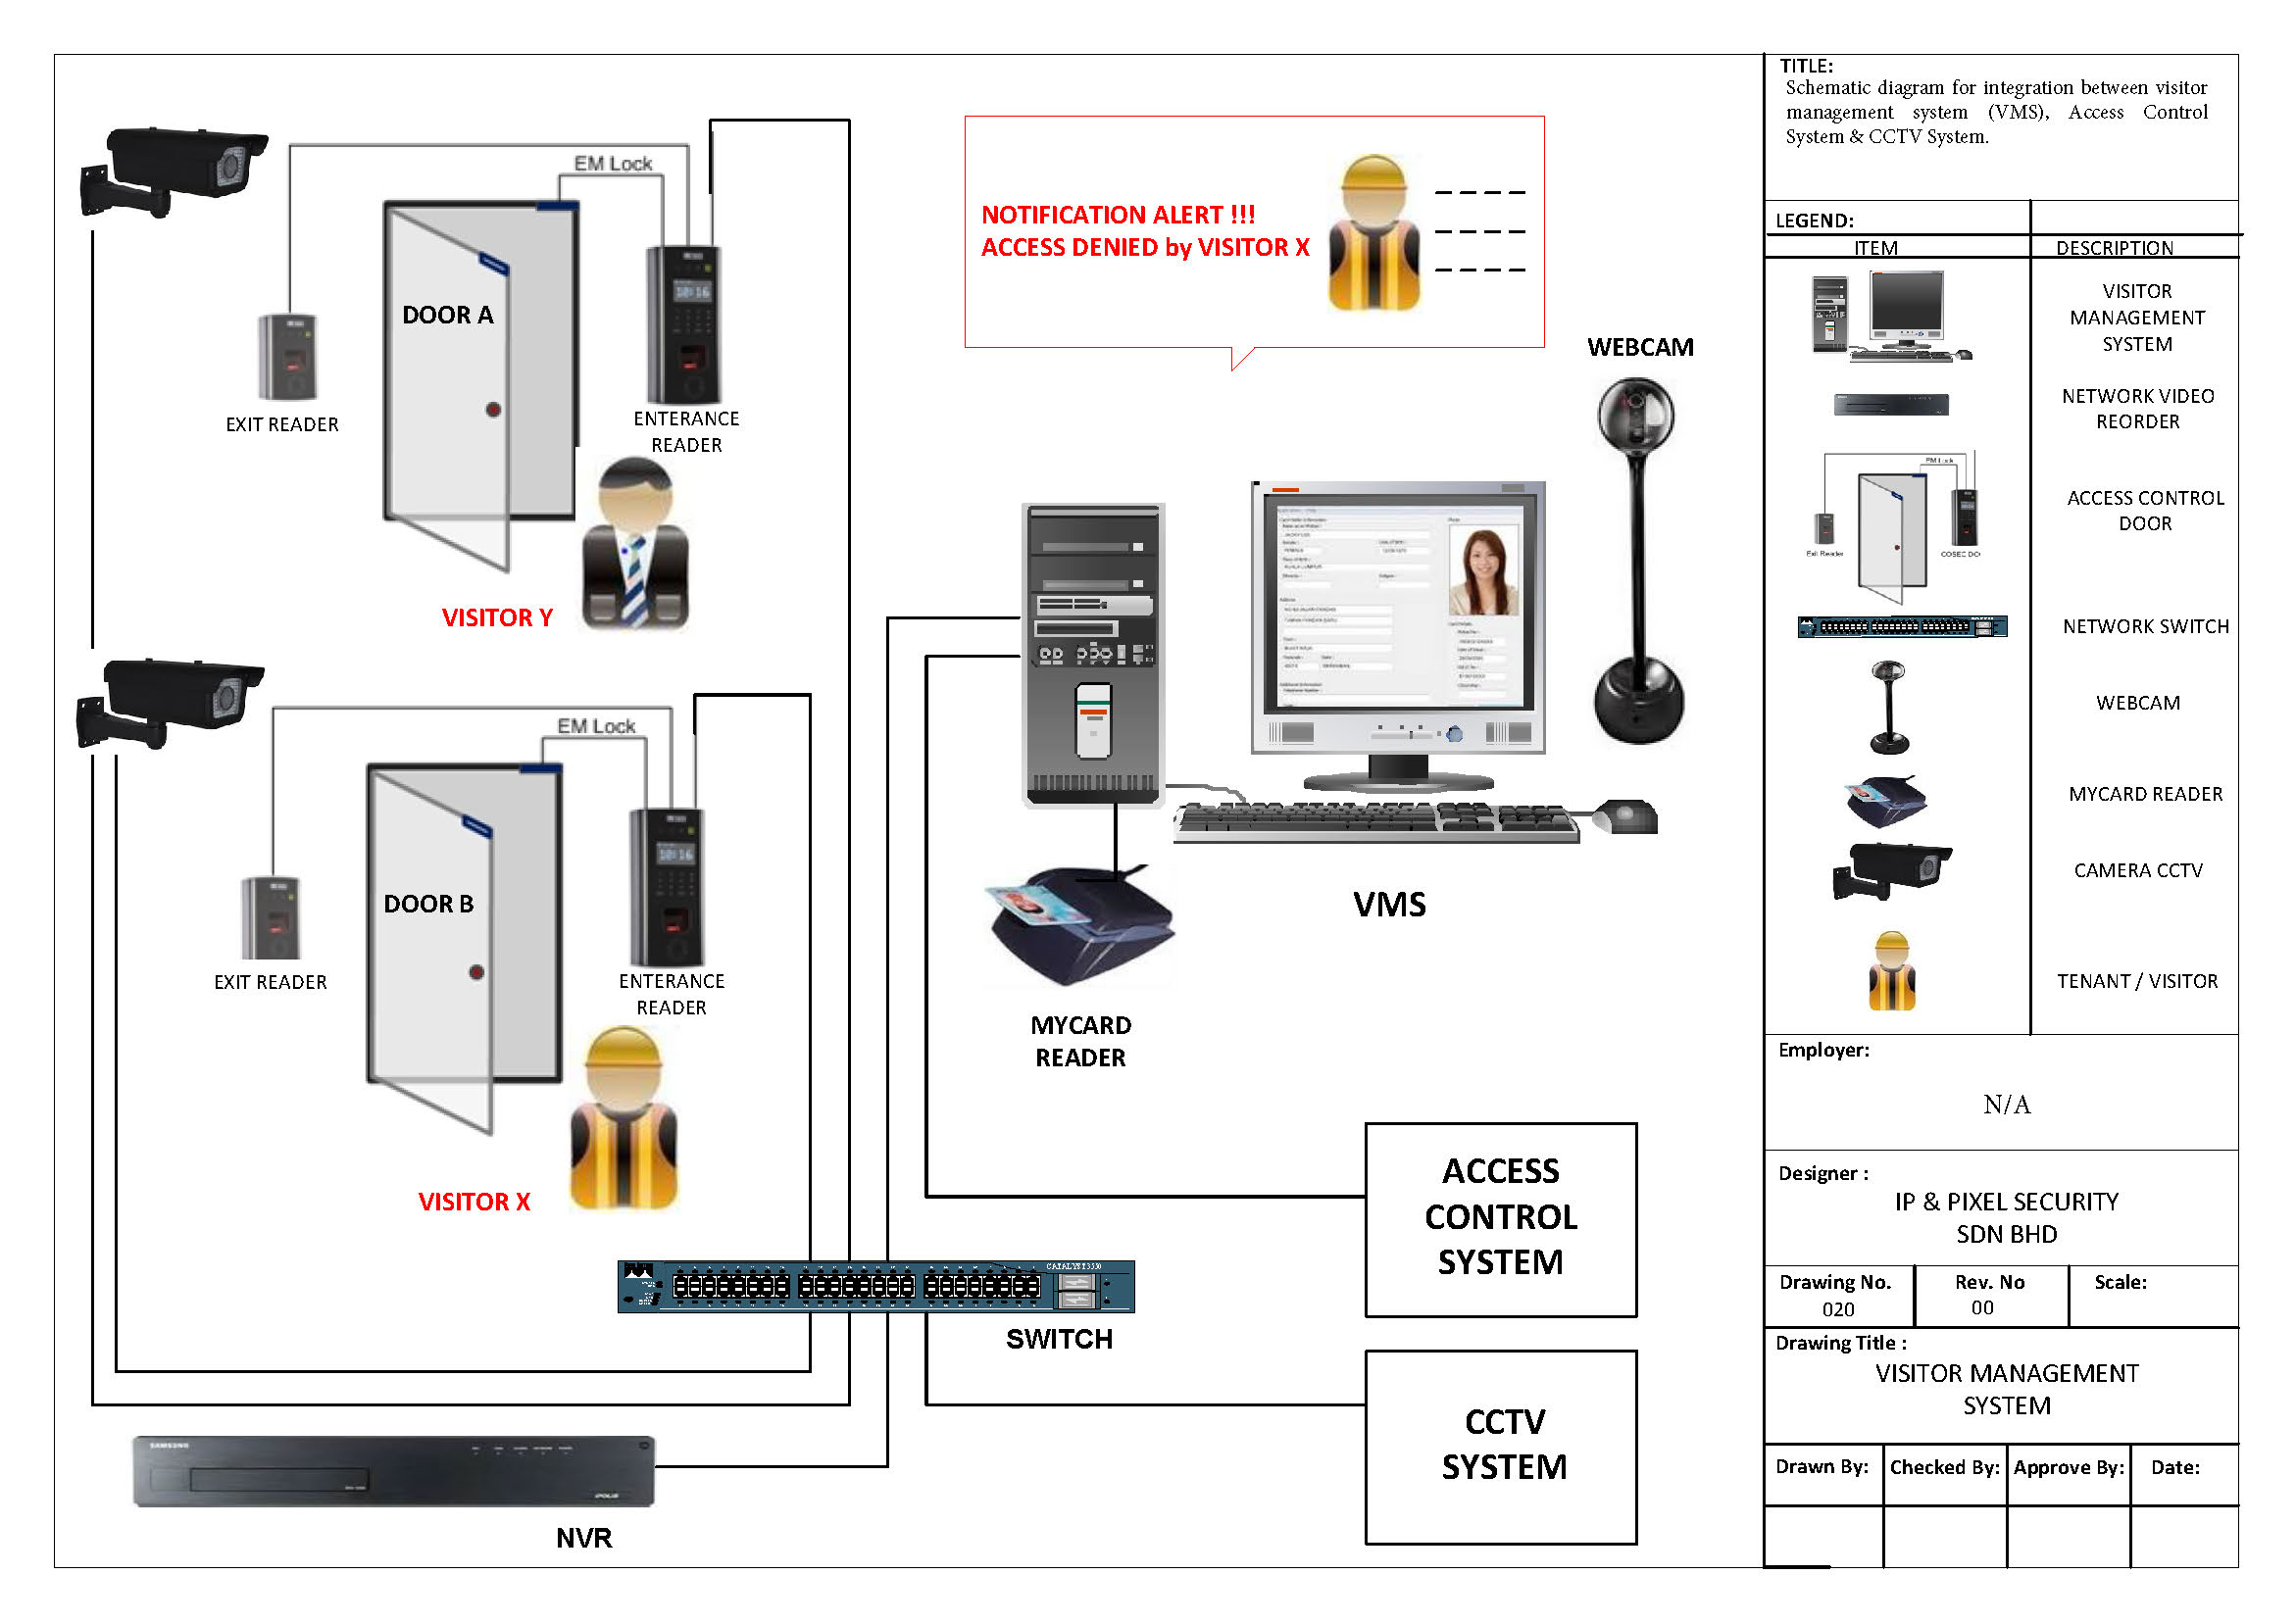 Visitor Management System on control wiring diagrams